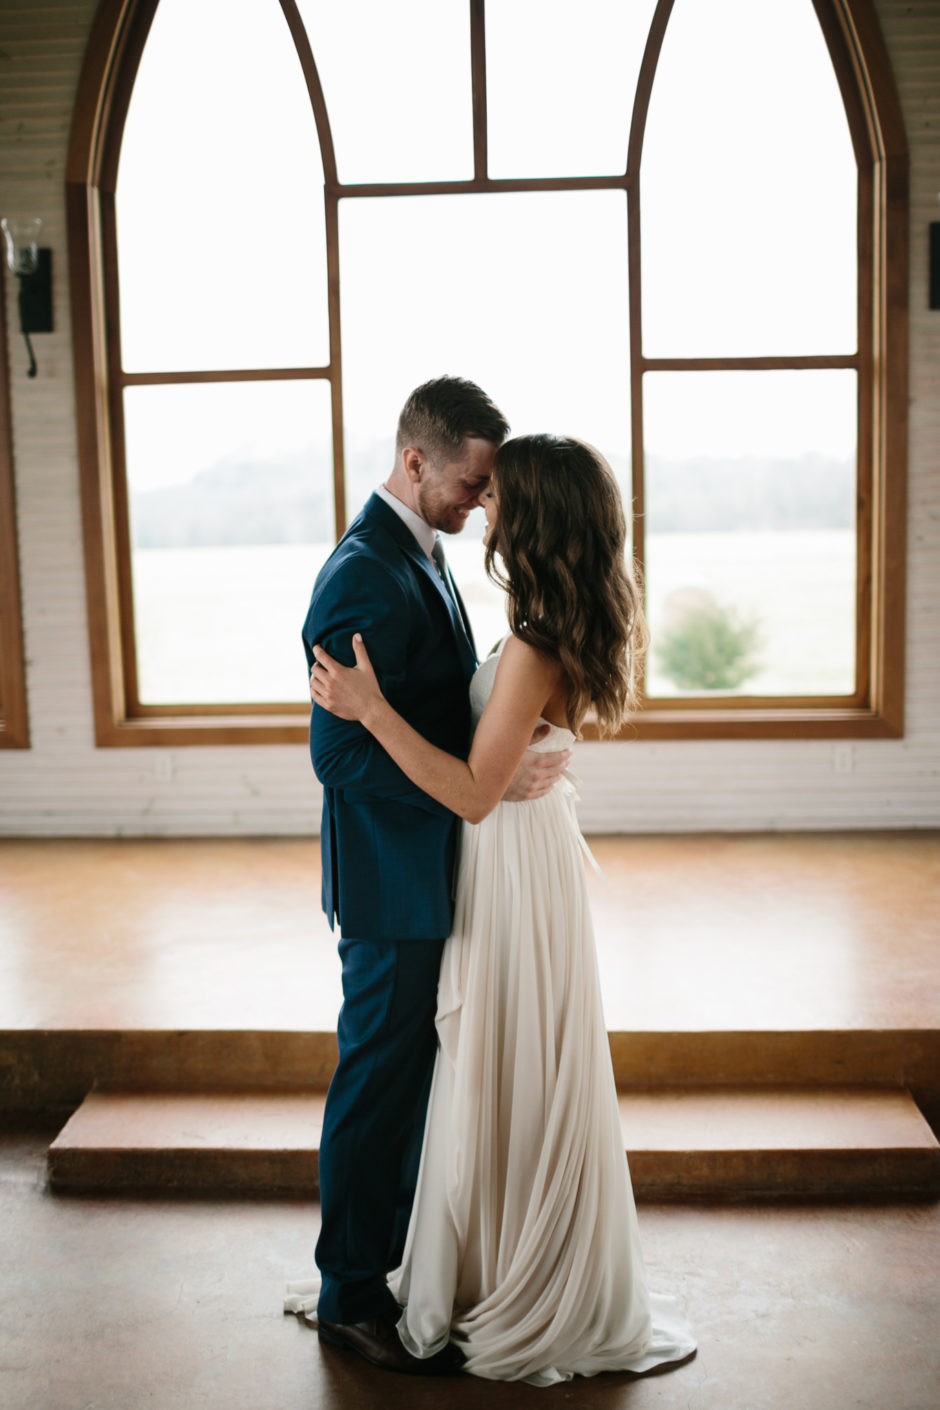 View More: http://rachelmeaganphotography.pass.us/lauren-and-matt